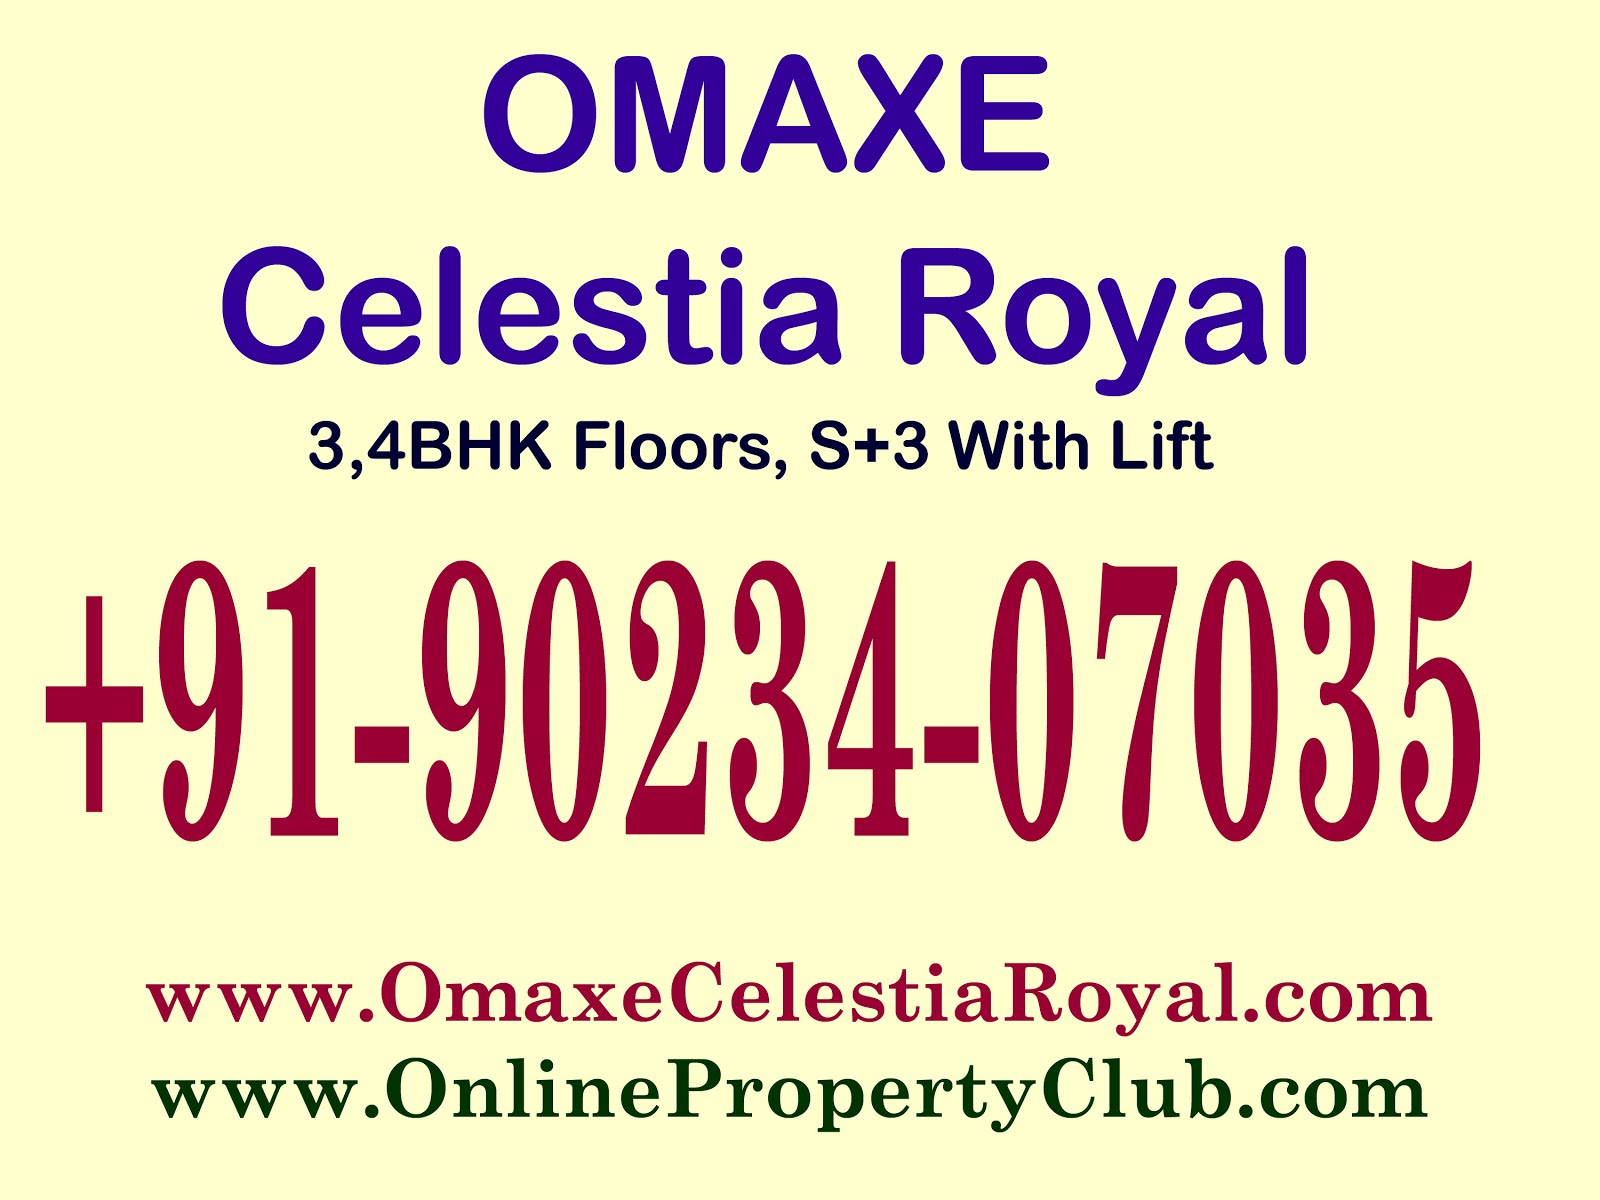 OMAXE CELESTIA ROYAL New Chandigarh Book Now